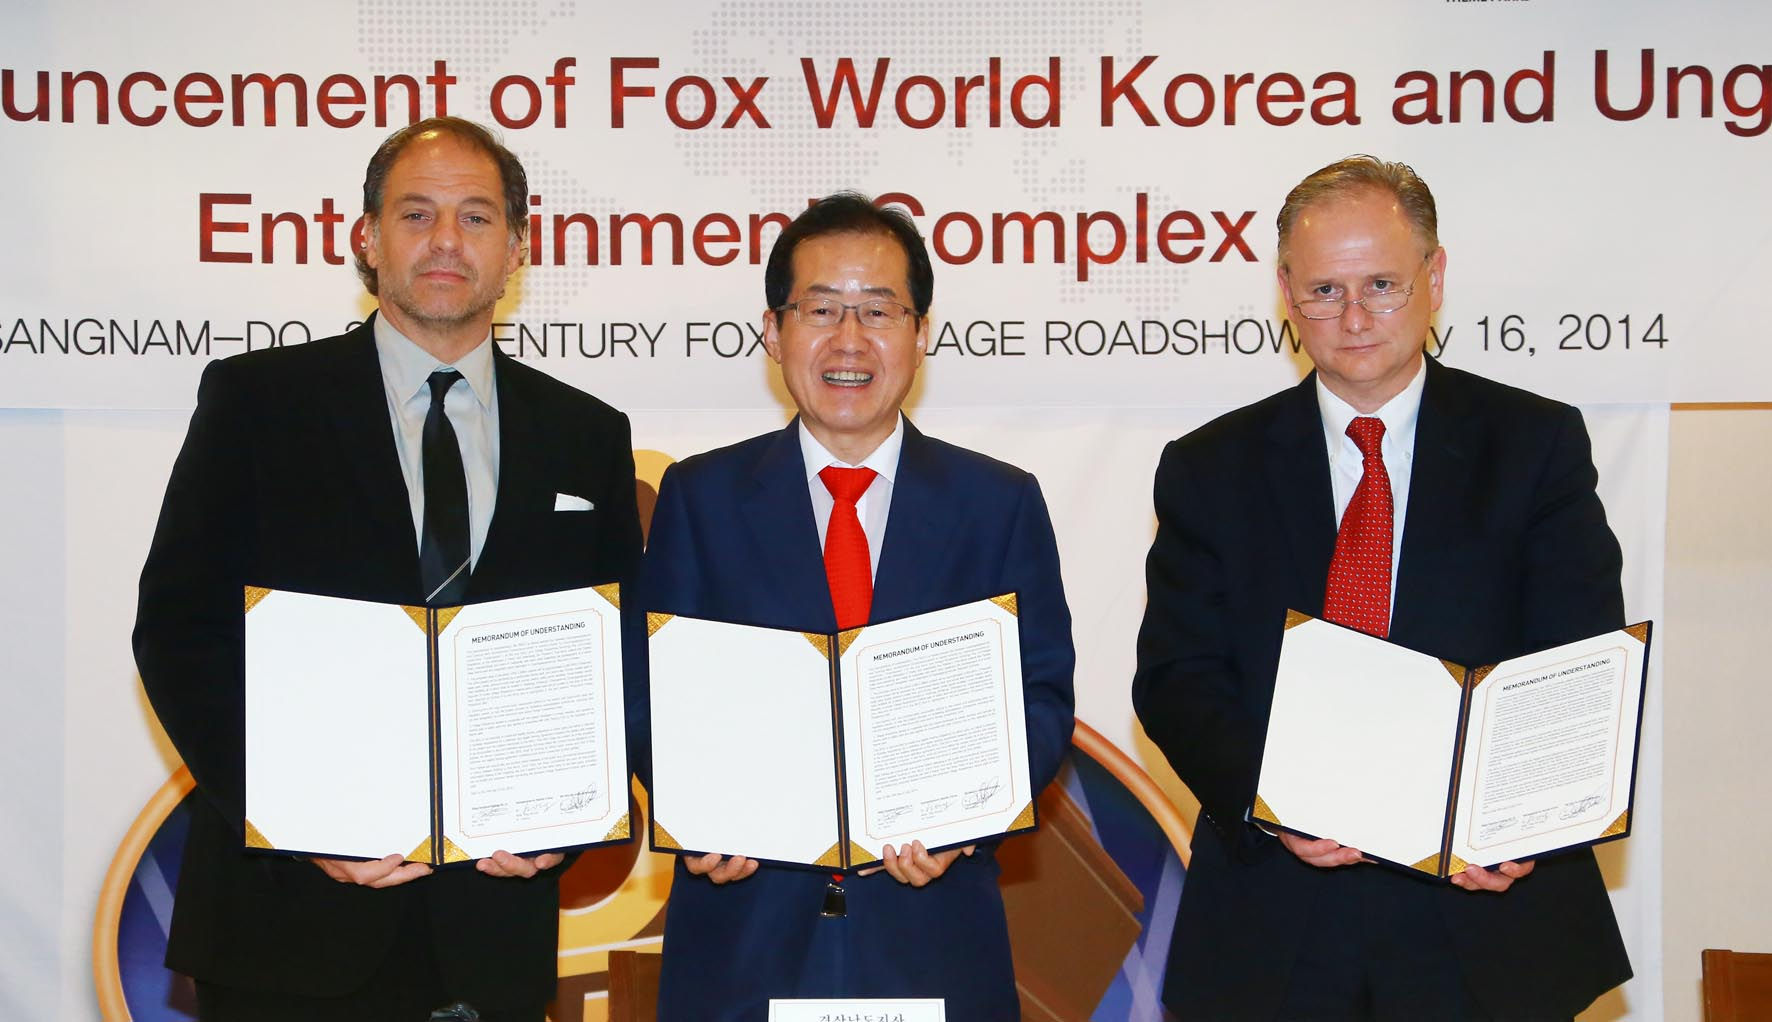 Governor Hong Joon-pyo, Gyeongsangnam-do Province, Jeffrey Godsick, president of Twentieth Century Fox Consumer Products, and Tim Fisher, CEO of Village Roadshow Theme Parks, announced the signing of MoU agreements to plan for Korea's first international theme park and resort destination, 20th Century Fox World. (image: South Gyeongsang Provincial Office)